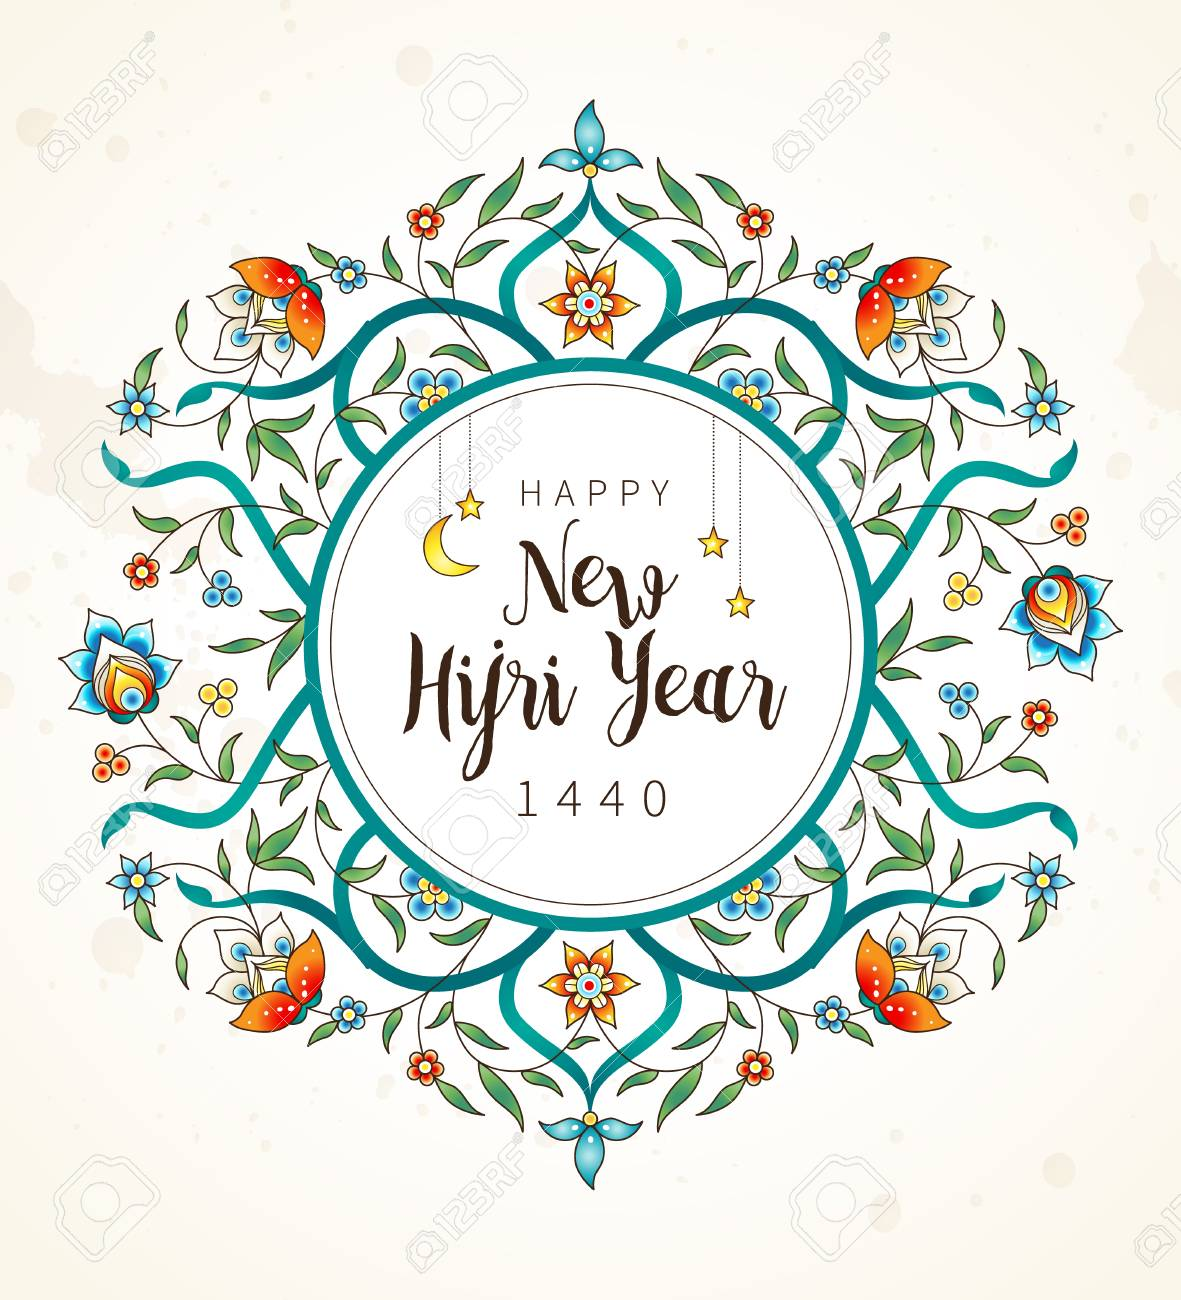 Vector holiday Happy New Hijri Year 1440. Card with calligraphy, floral frame, moon for muslim celebration. Islamic greeting illustration for gift certificates, banners. Decoration in Eastern style. - 103279413